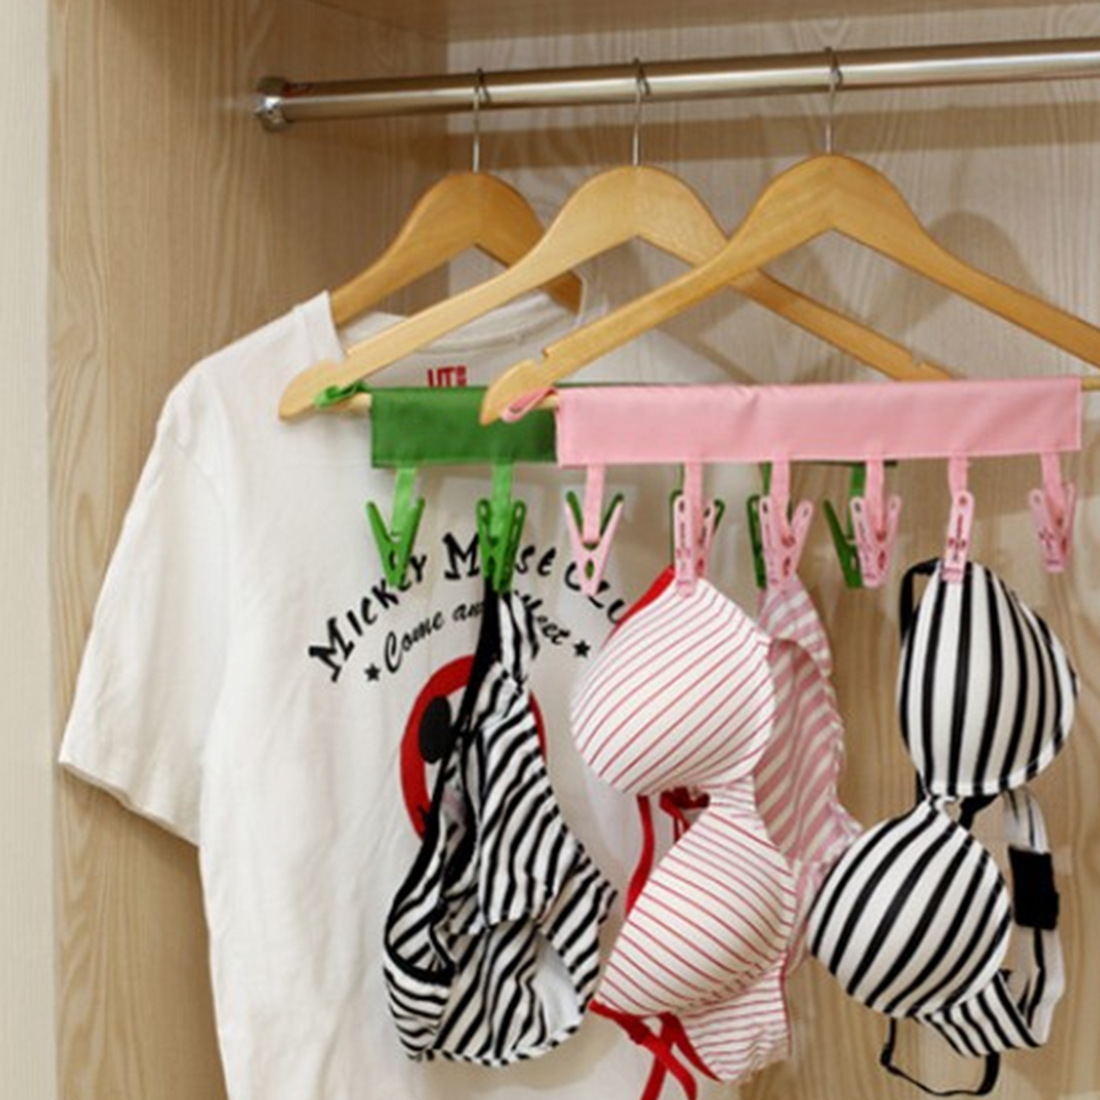 Practical Dacron Plastic Portable Bathrooms Cloth Hanger Rack Clothespin  Business Travel Portable Folding Cloth Hanger Clips. Popular Cloth Hanger Buy Cheap Cloth Hanger lots from China Cloth